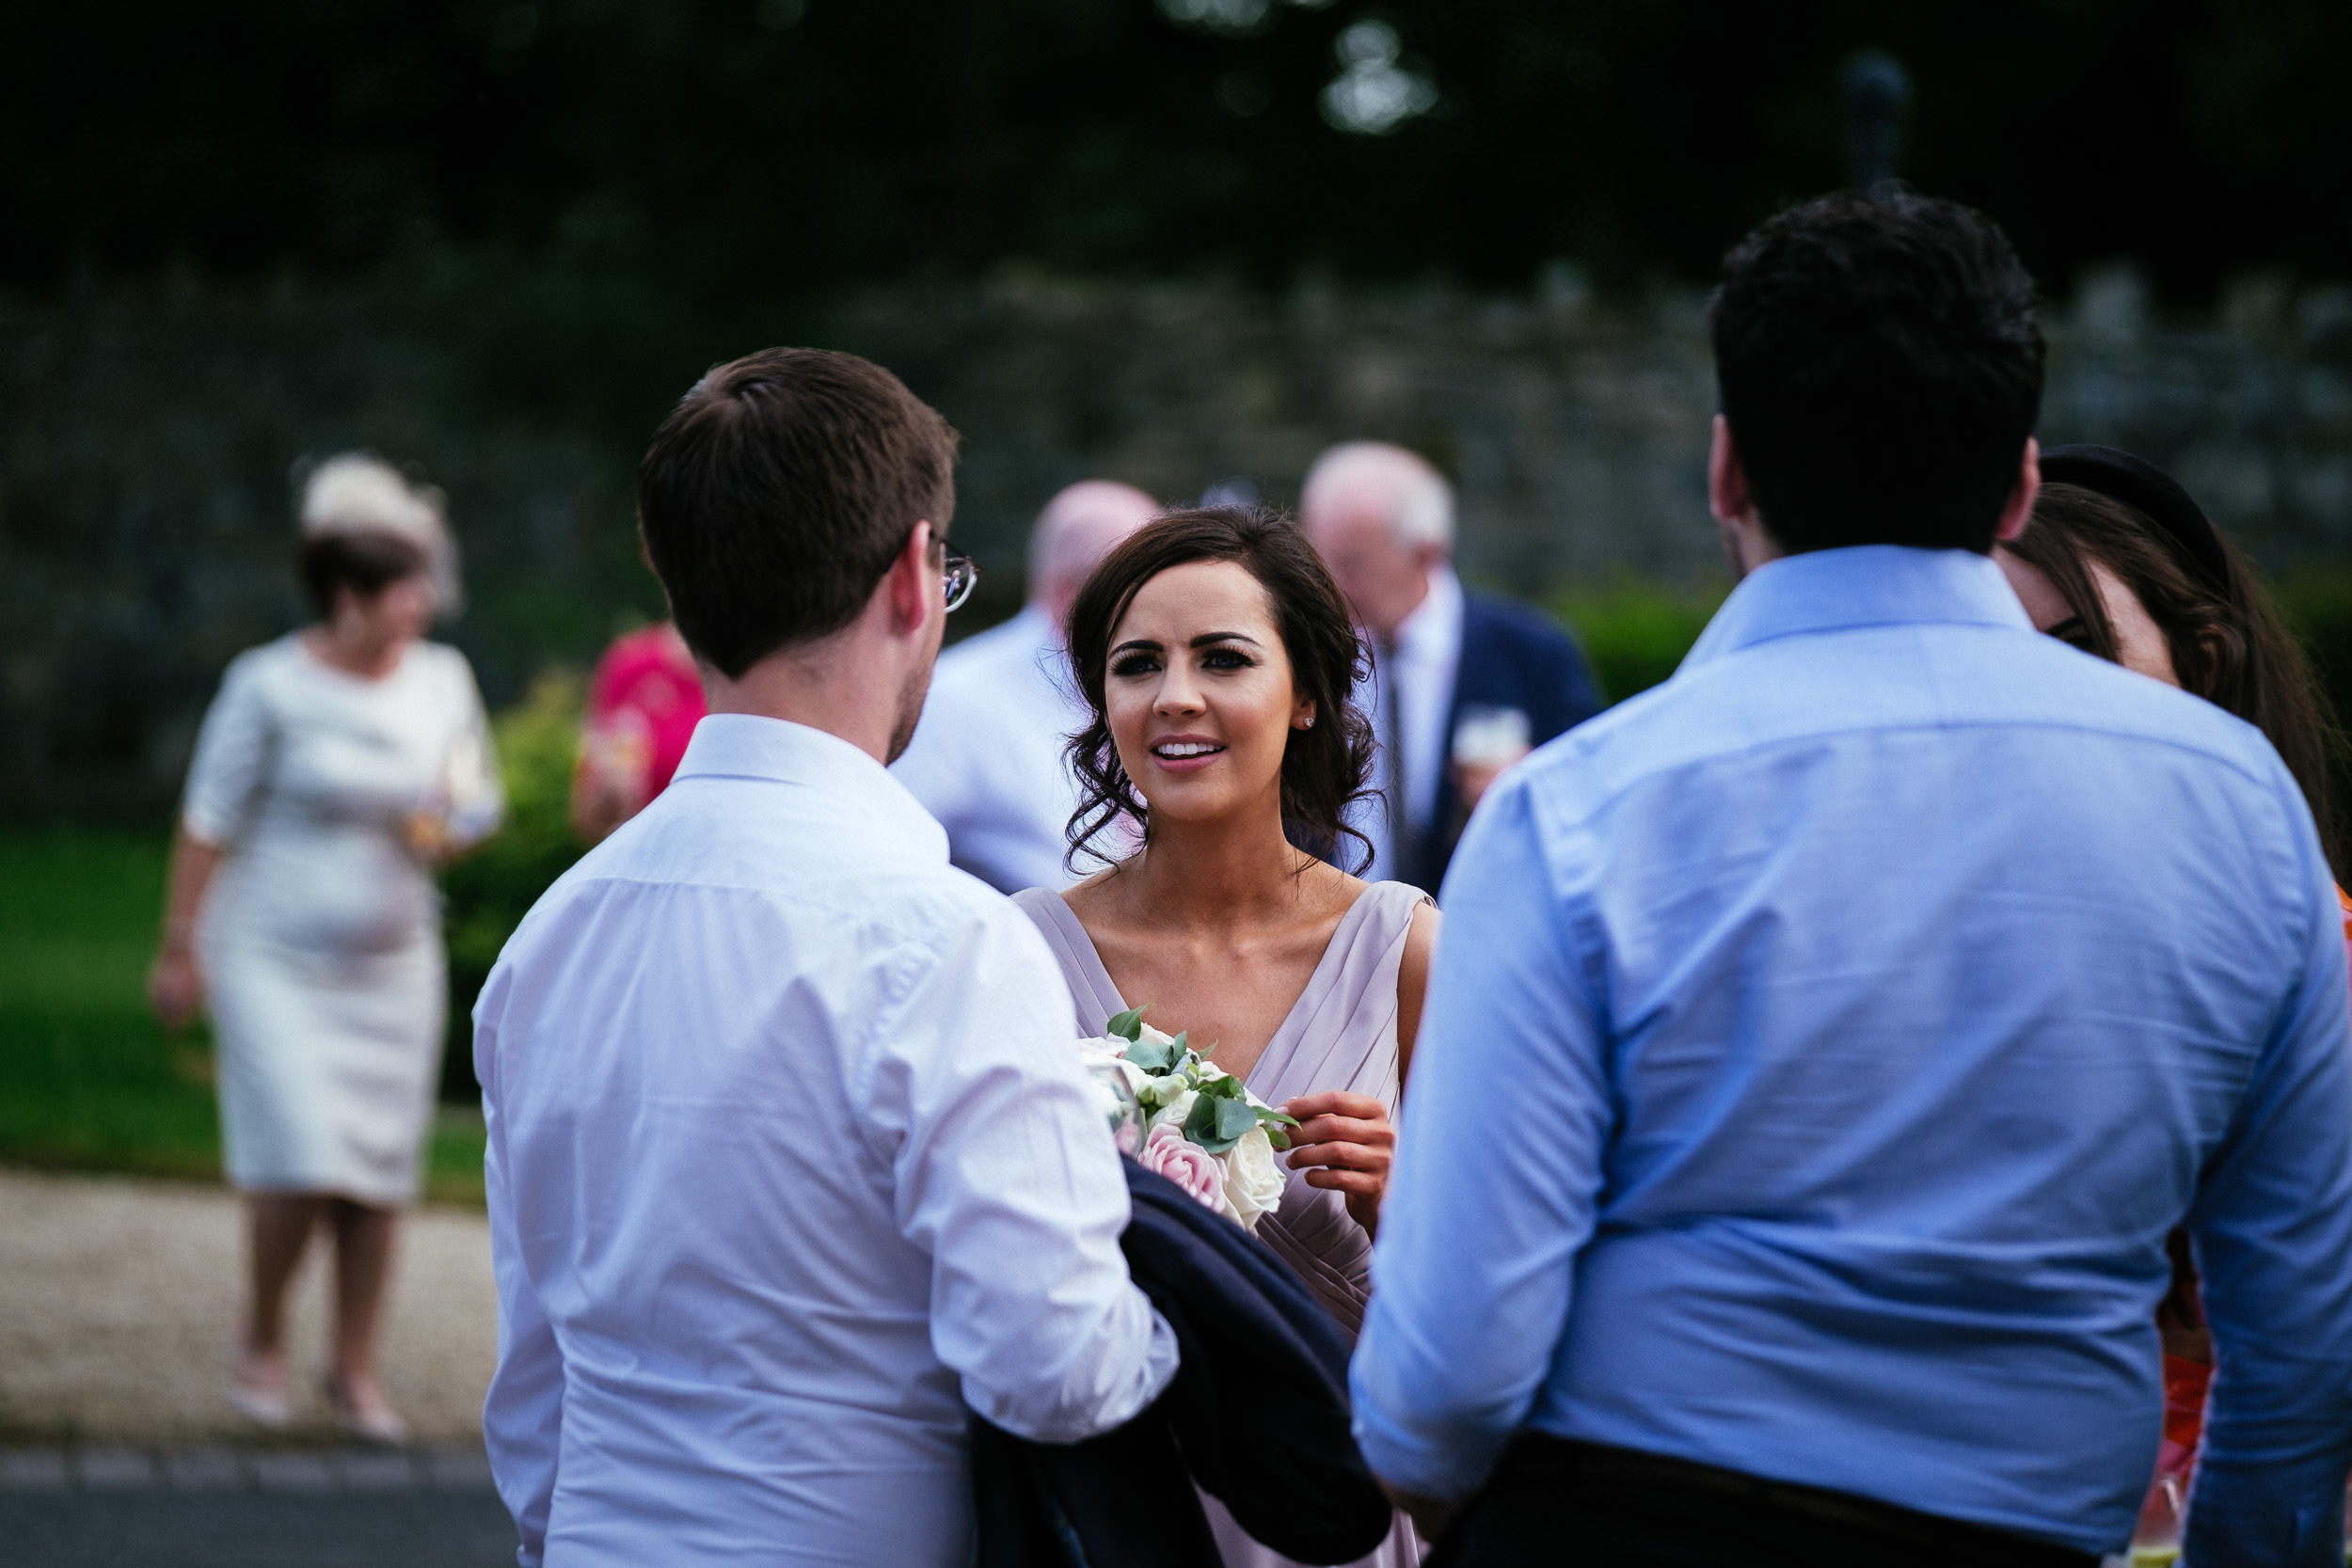 wedding guests at Johnstown House estate